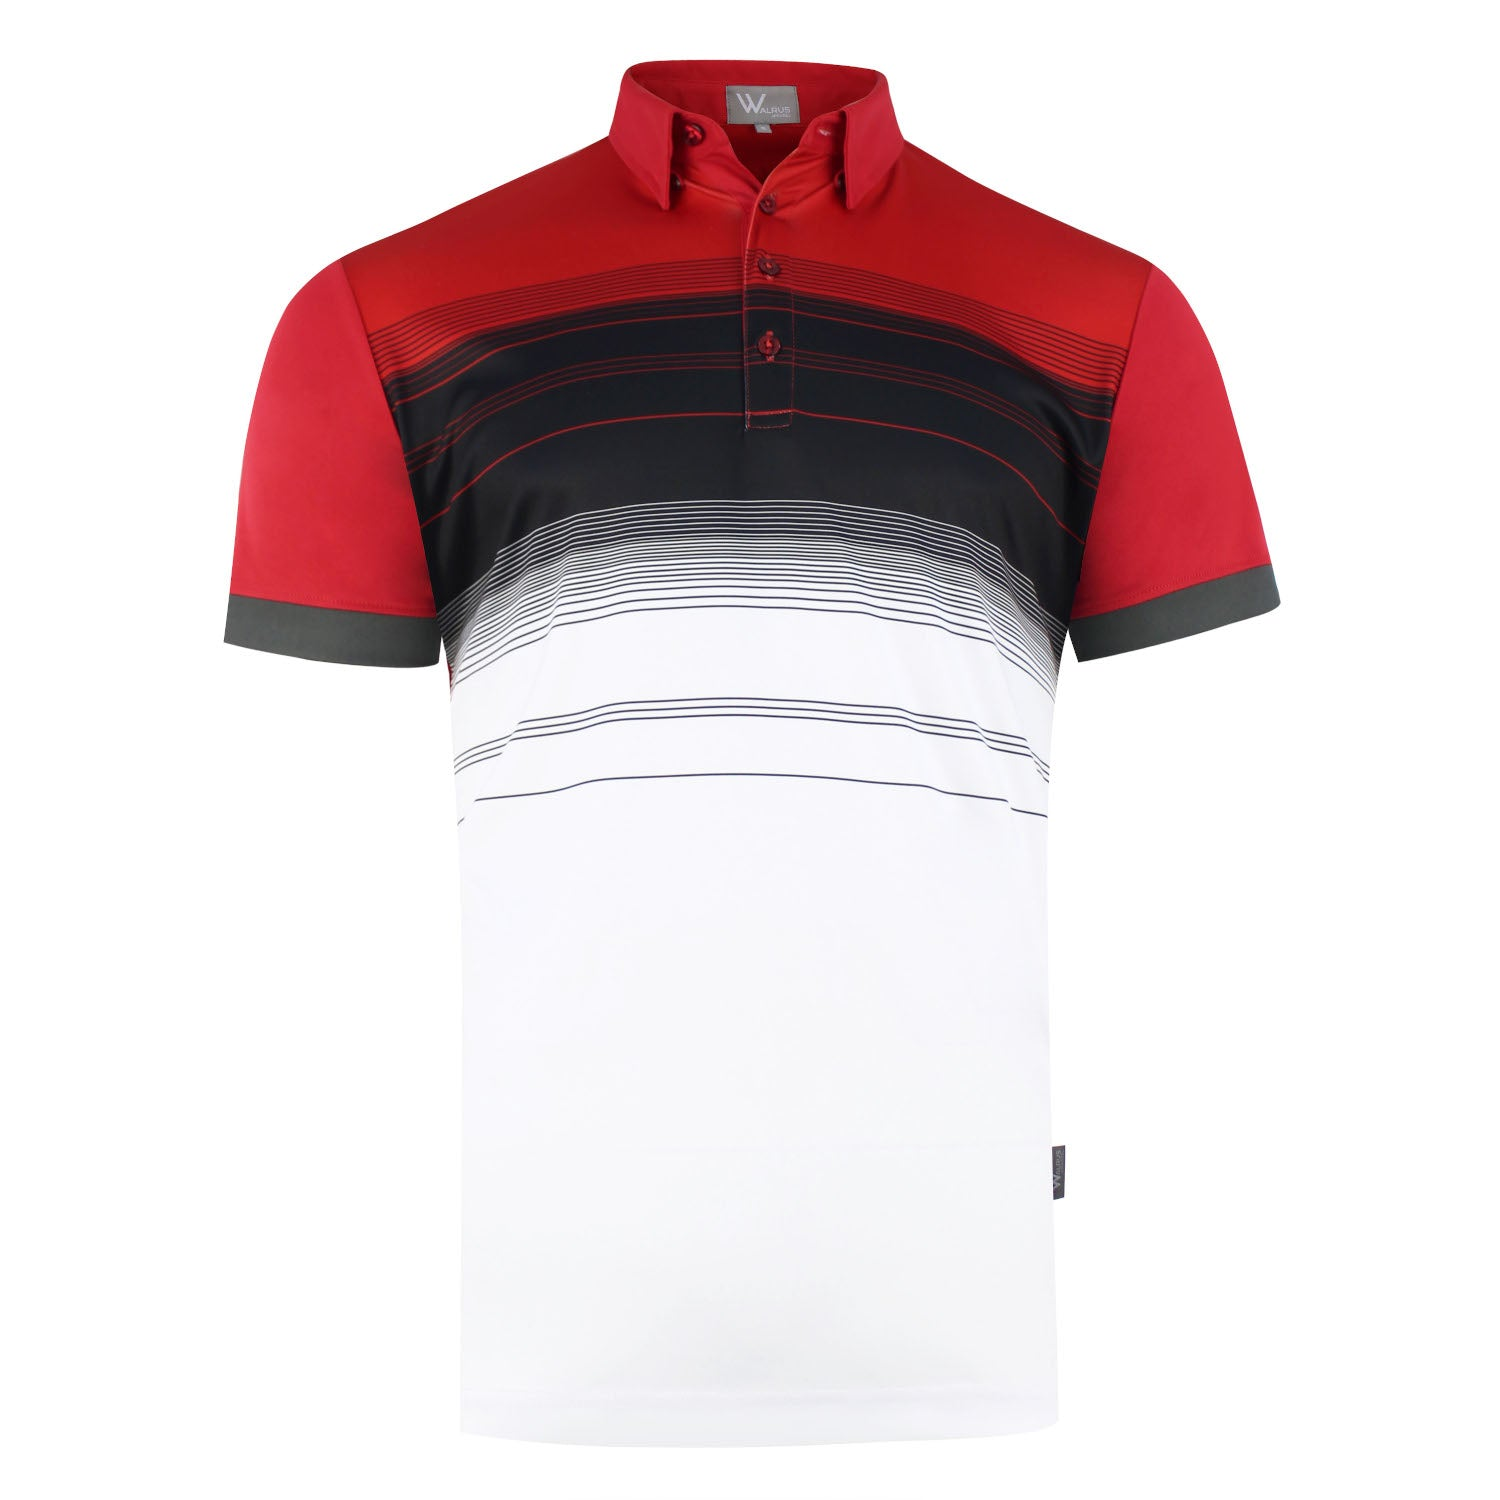 Casey Bold Chest Stripe Mens Golf Polo Shirt - Red by  Walrus Apparel